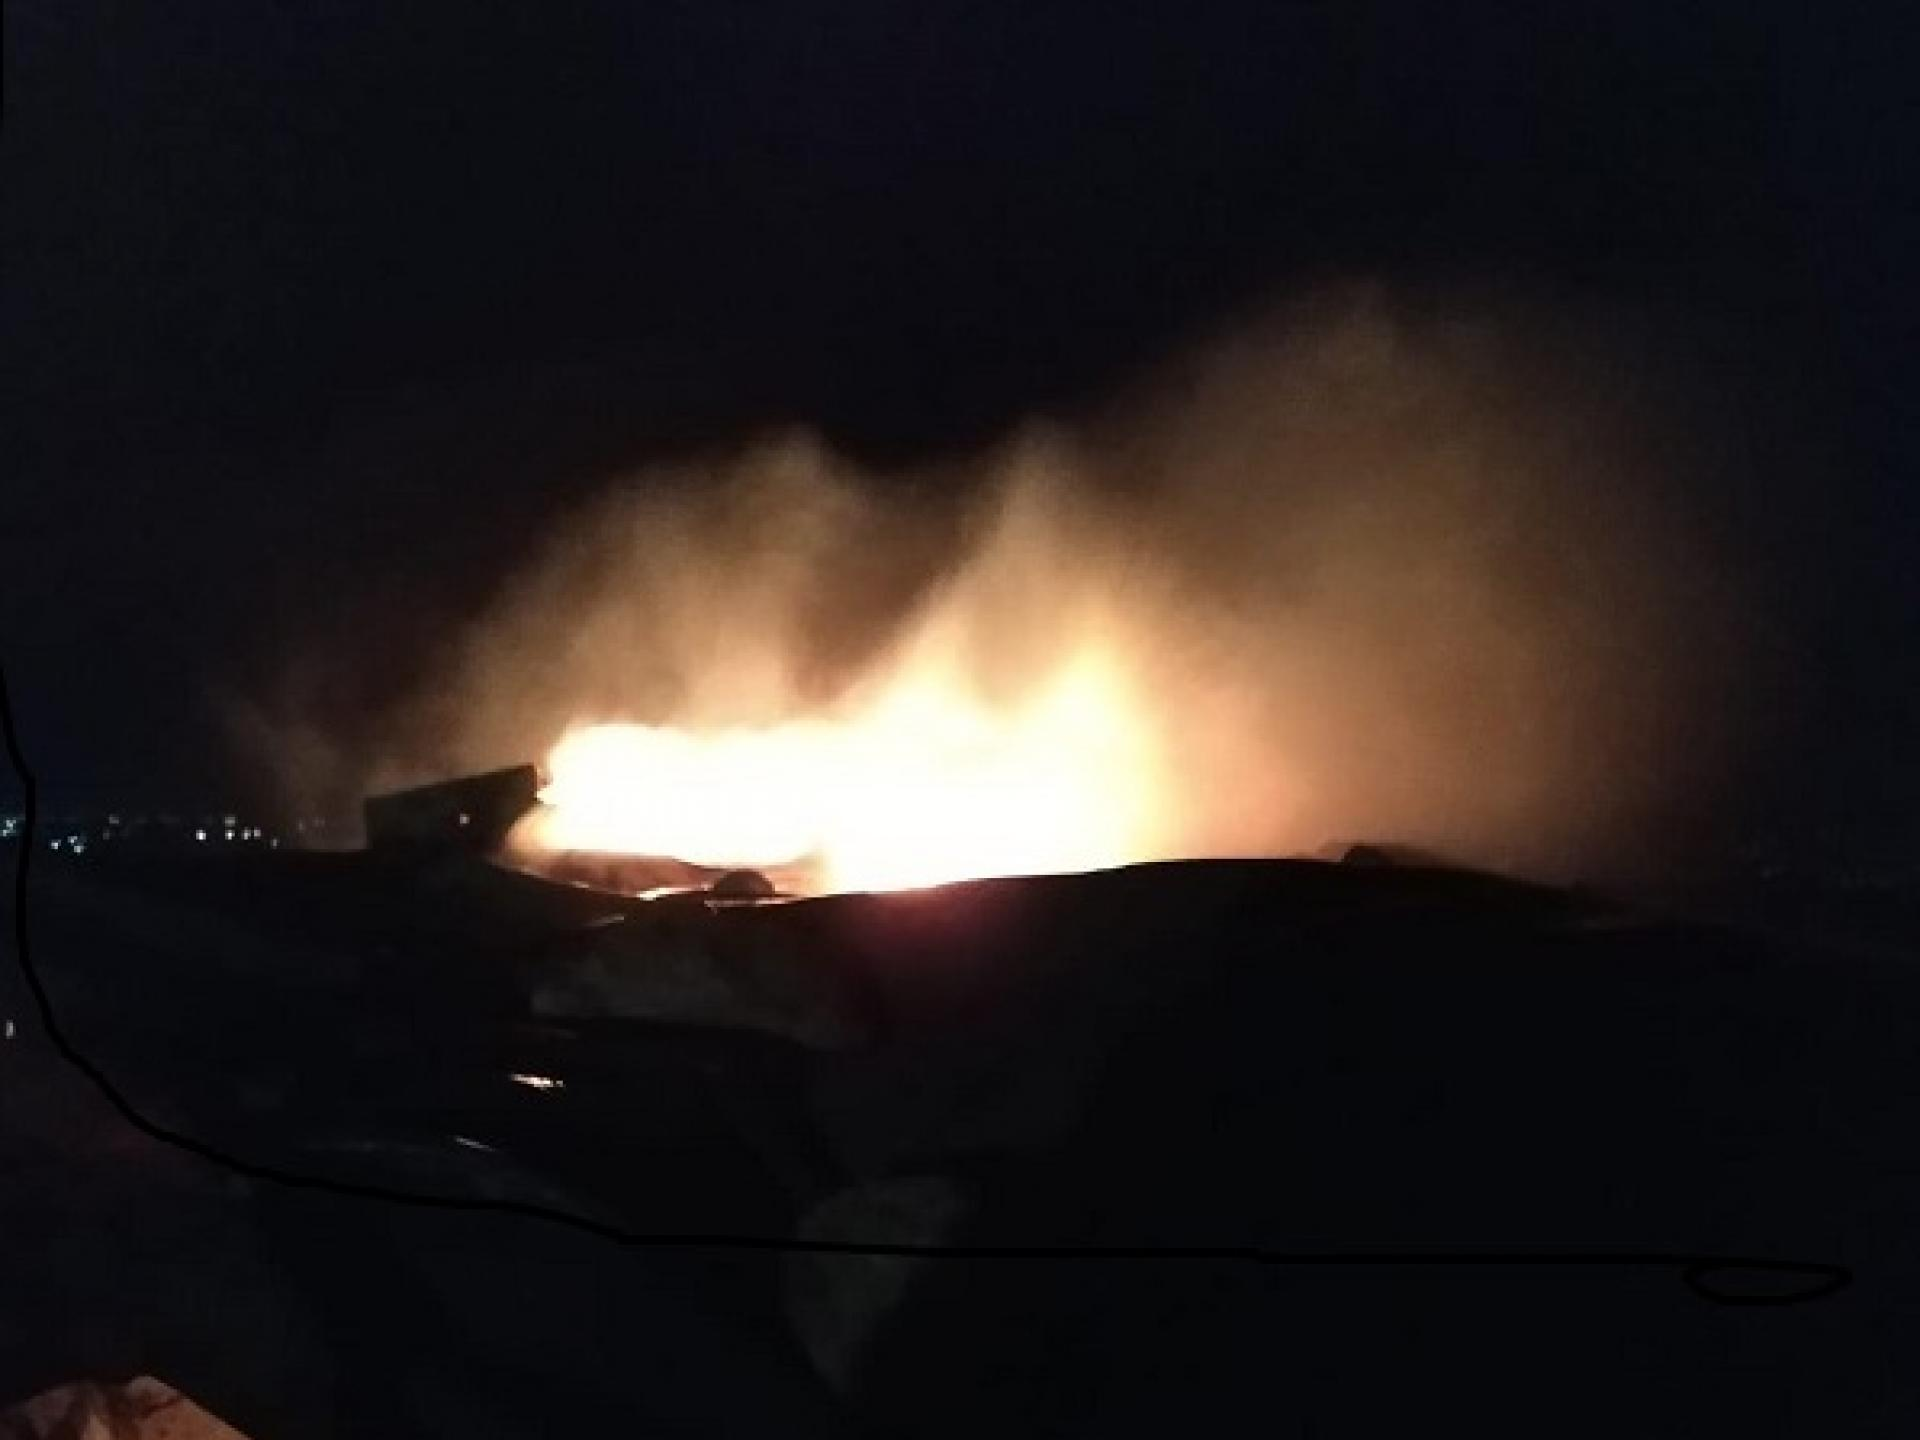 the blaze taken by a neighbour in real time.  The photo that looks like a volcano is of the damaged tarpaulin that covers the oven